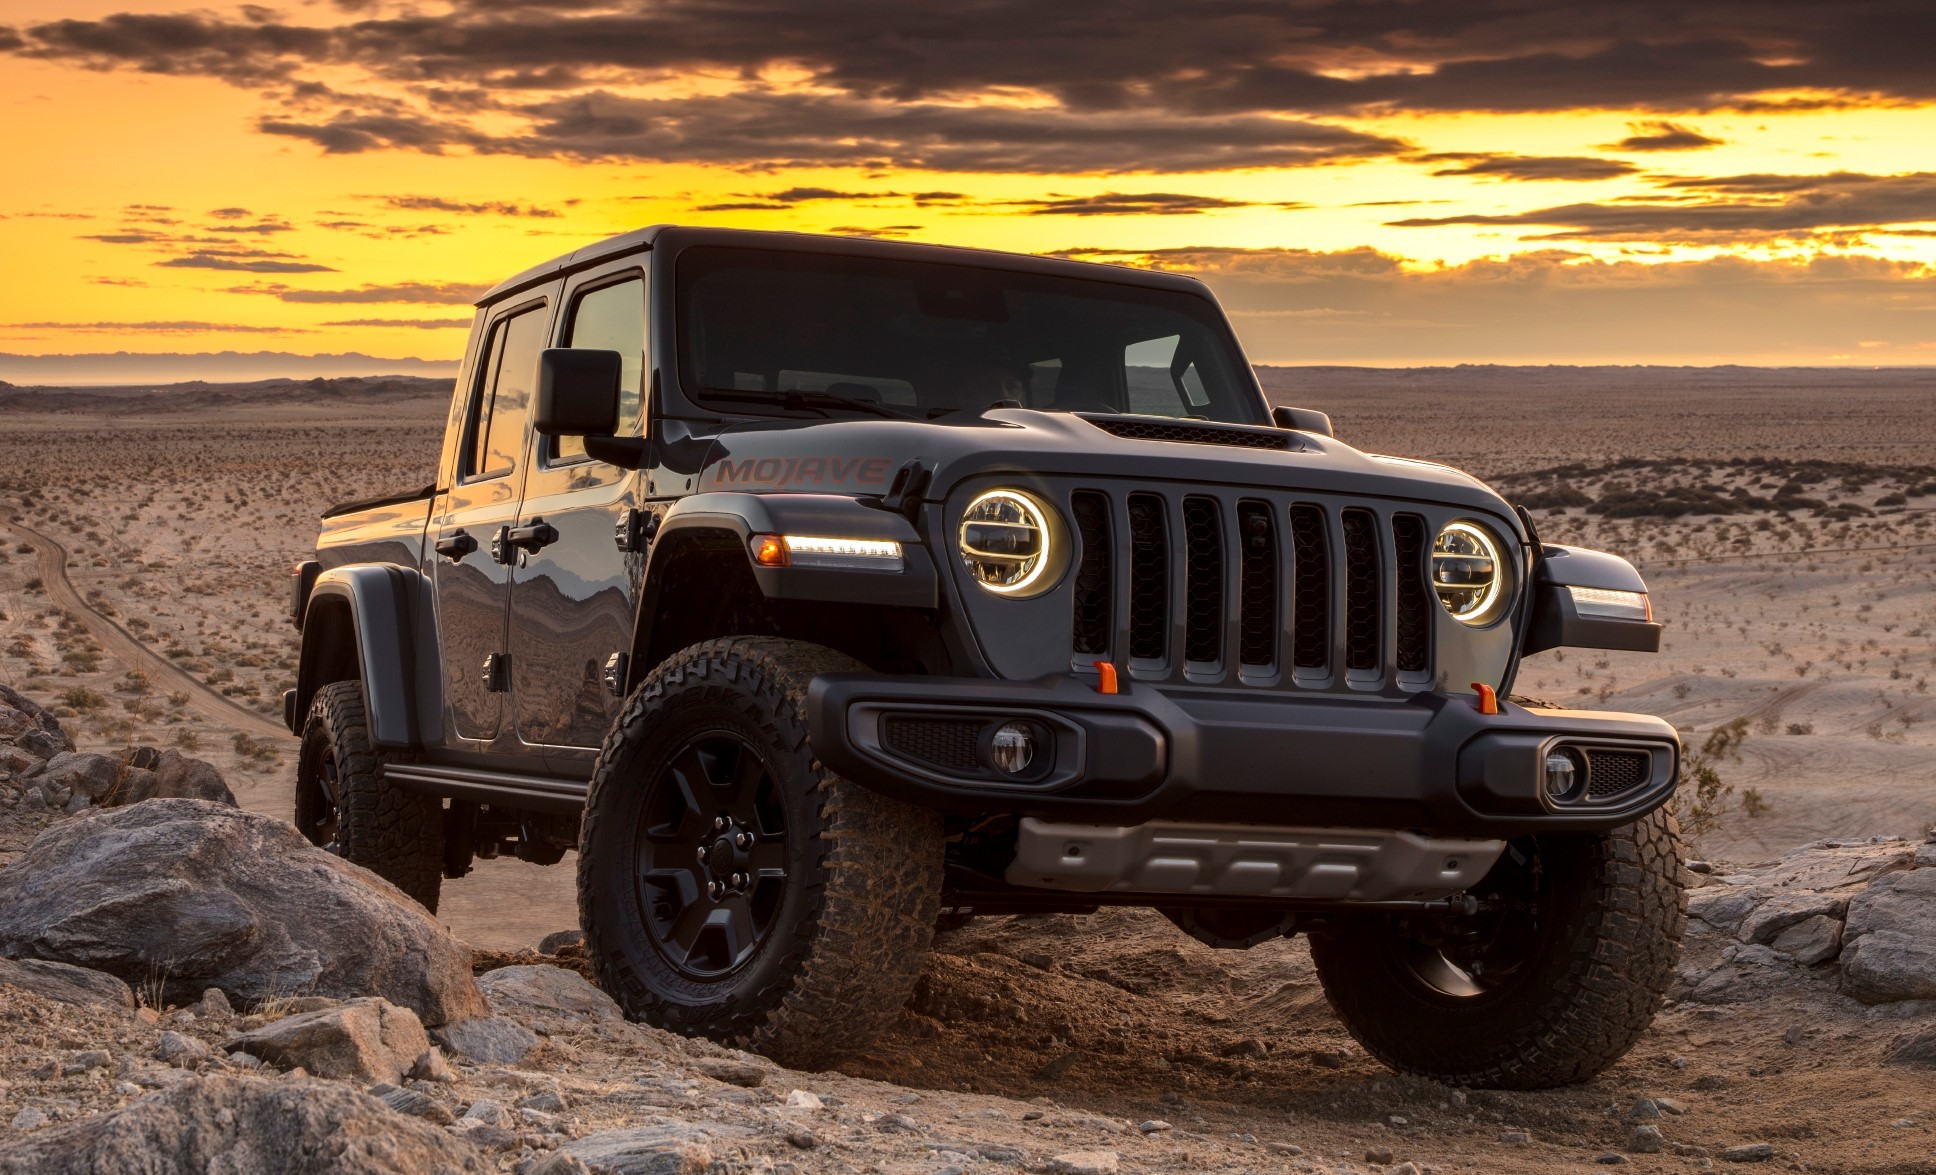 Jeep Gladiator Mojave Desert Rated front.jpg